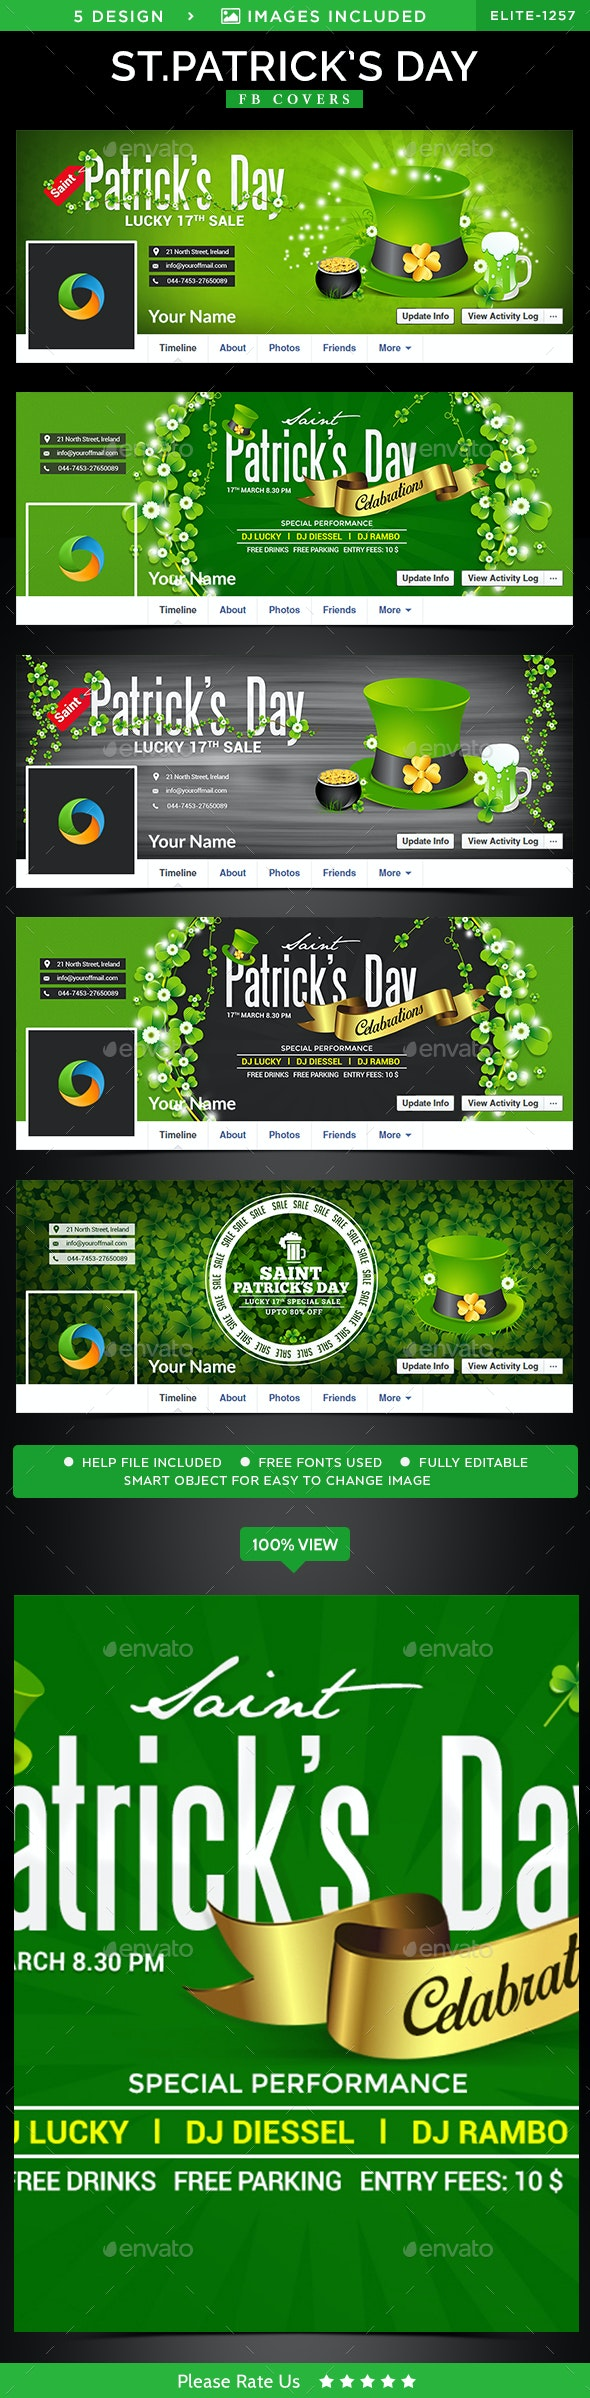 St.Patrick's Day Facebook Covers - 5 Designs - Facebook Timeline Covers Social Media